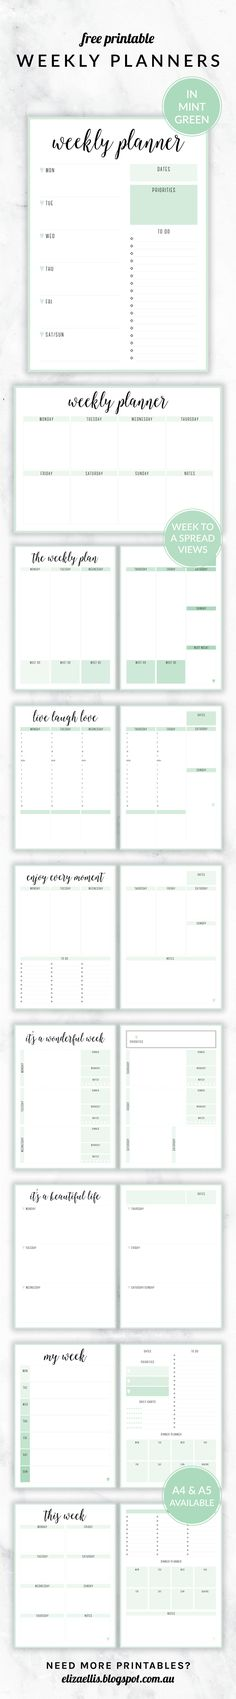 Free Printable Irma Weekly Planners in Mint by Eliza Ellis. With nine different styles, they're the perfect organizing solution for mums, entrepreneurs, bloggers, etsy sellers, professionals, WAHM's, SAHM's, students and moms. Available in 6 colors and both A4 and A5 sizes. Includes week to a page planners as well as week to a spread and two page planners. Enjoy!